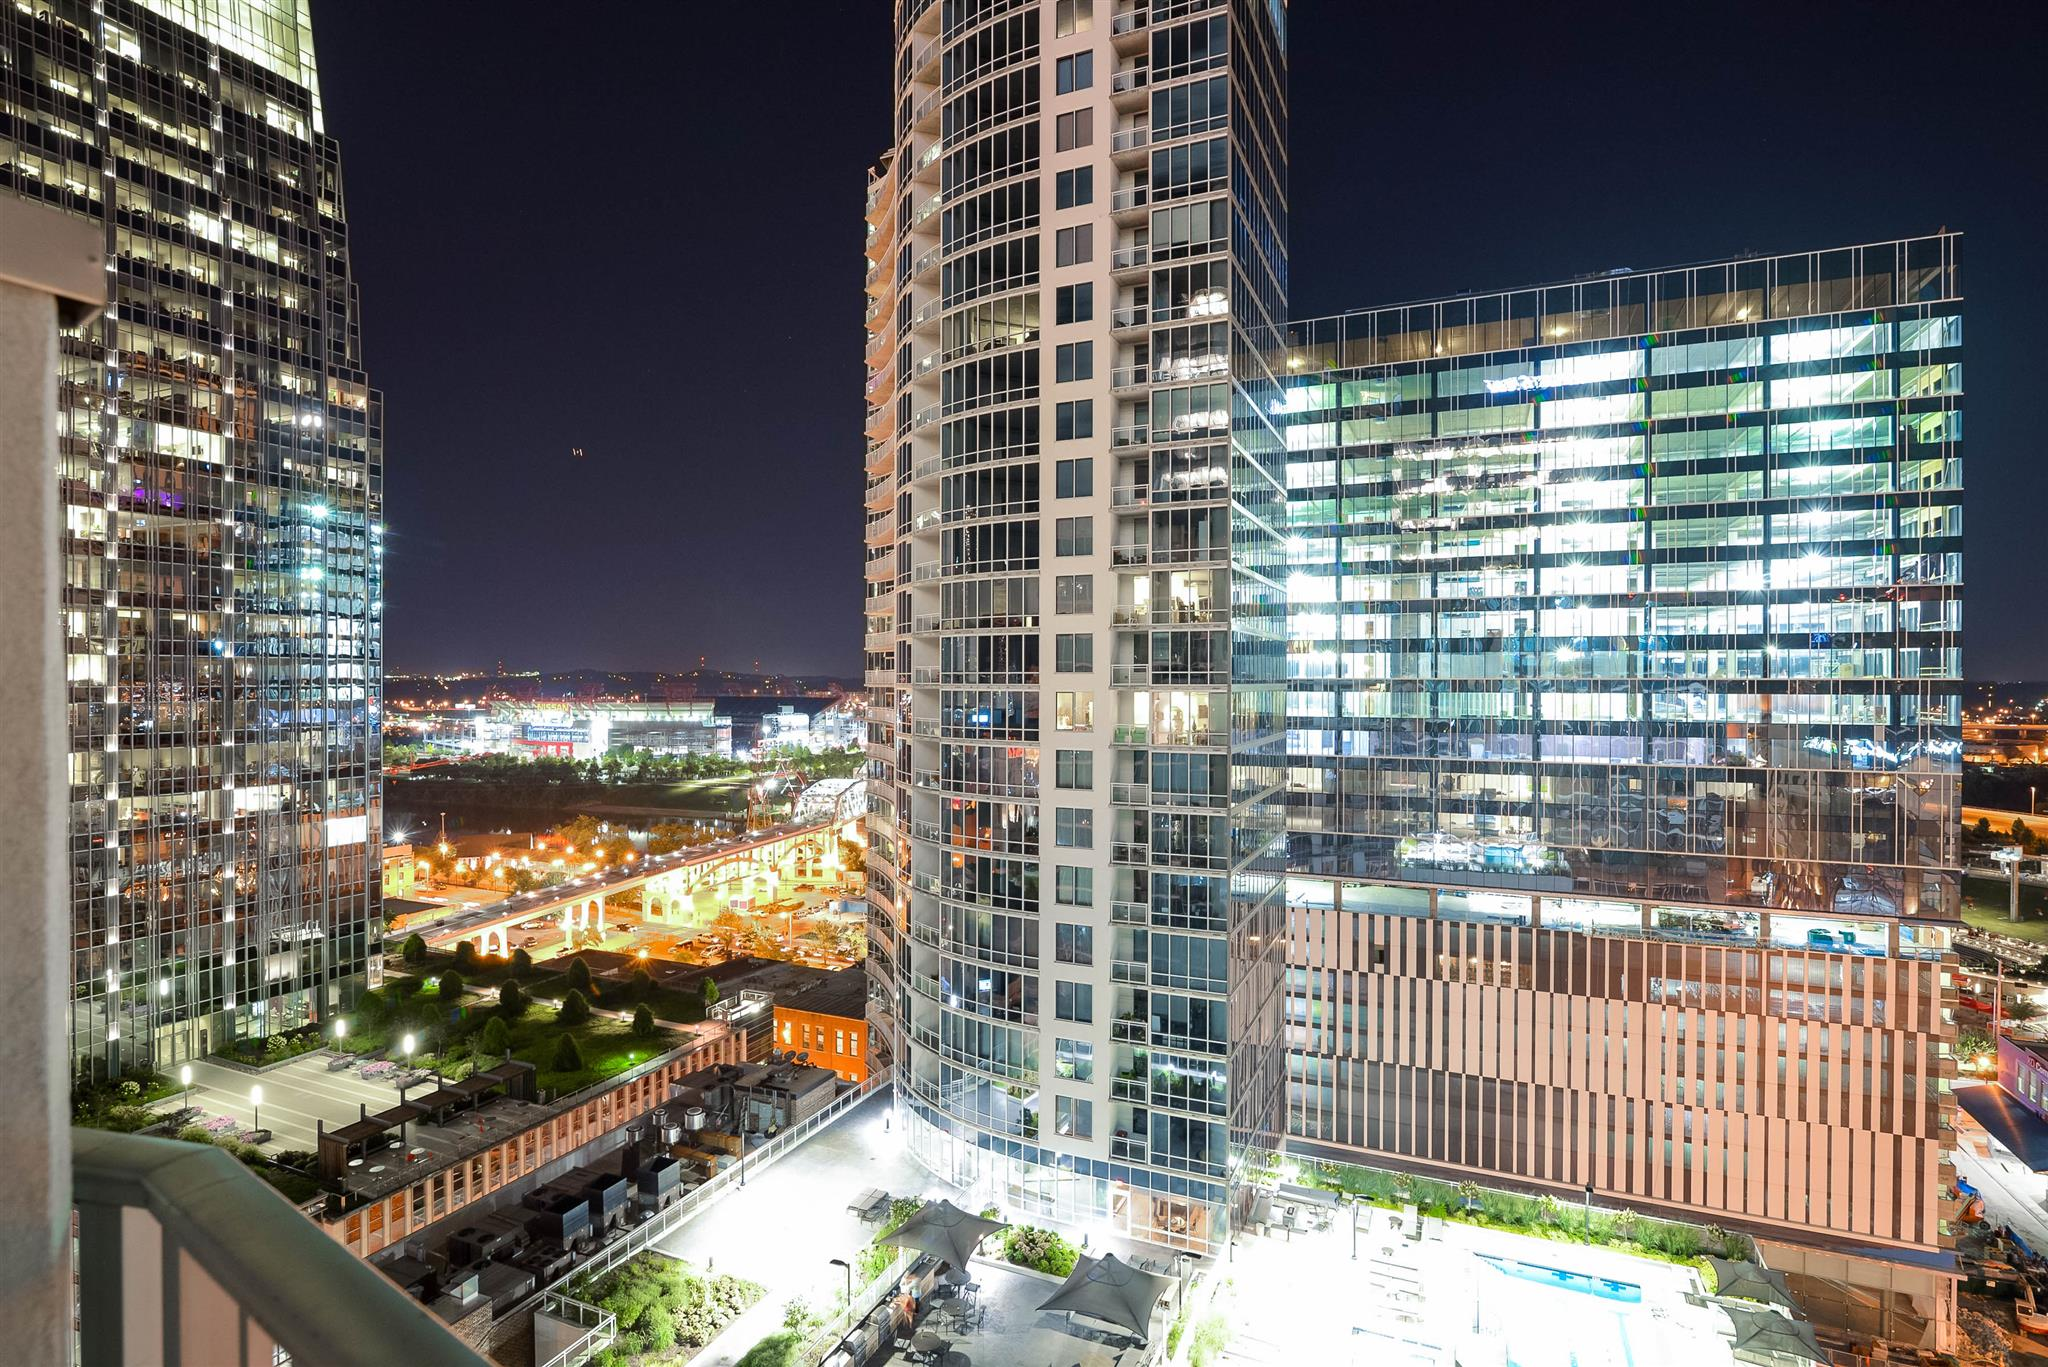 Live in the middle of it all...Bridgestone Arena, Ascend Amphitheater, Broadway, CMA Fest, Nissan Stadium. This #Nashville #SoBro Condo can be yours.  Contact me TODAY for a private night time showing with a downtown view. Buyers Agent to verify all info.